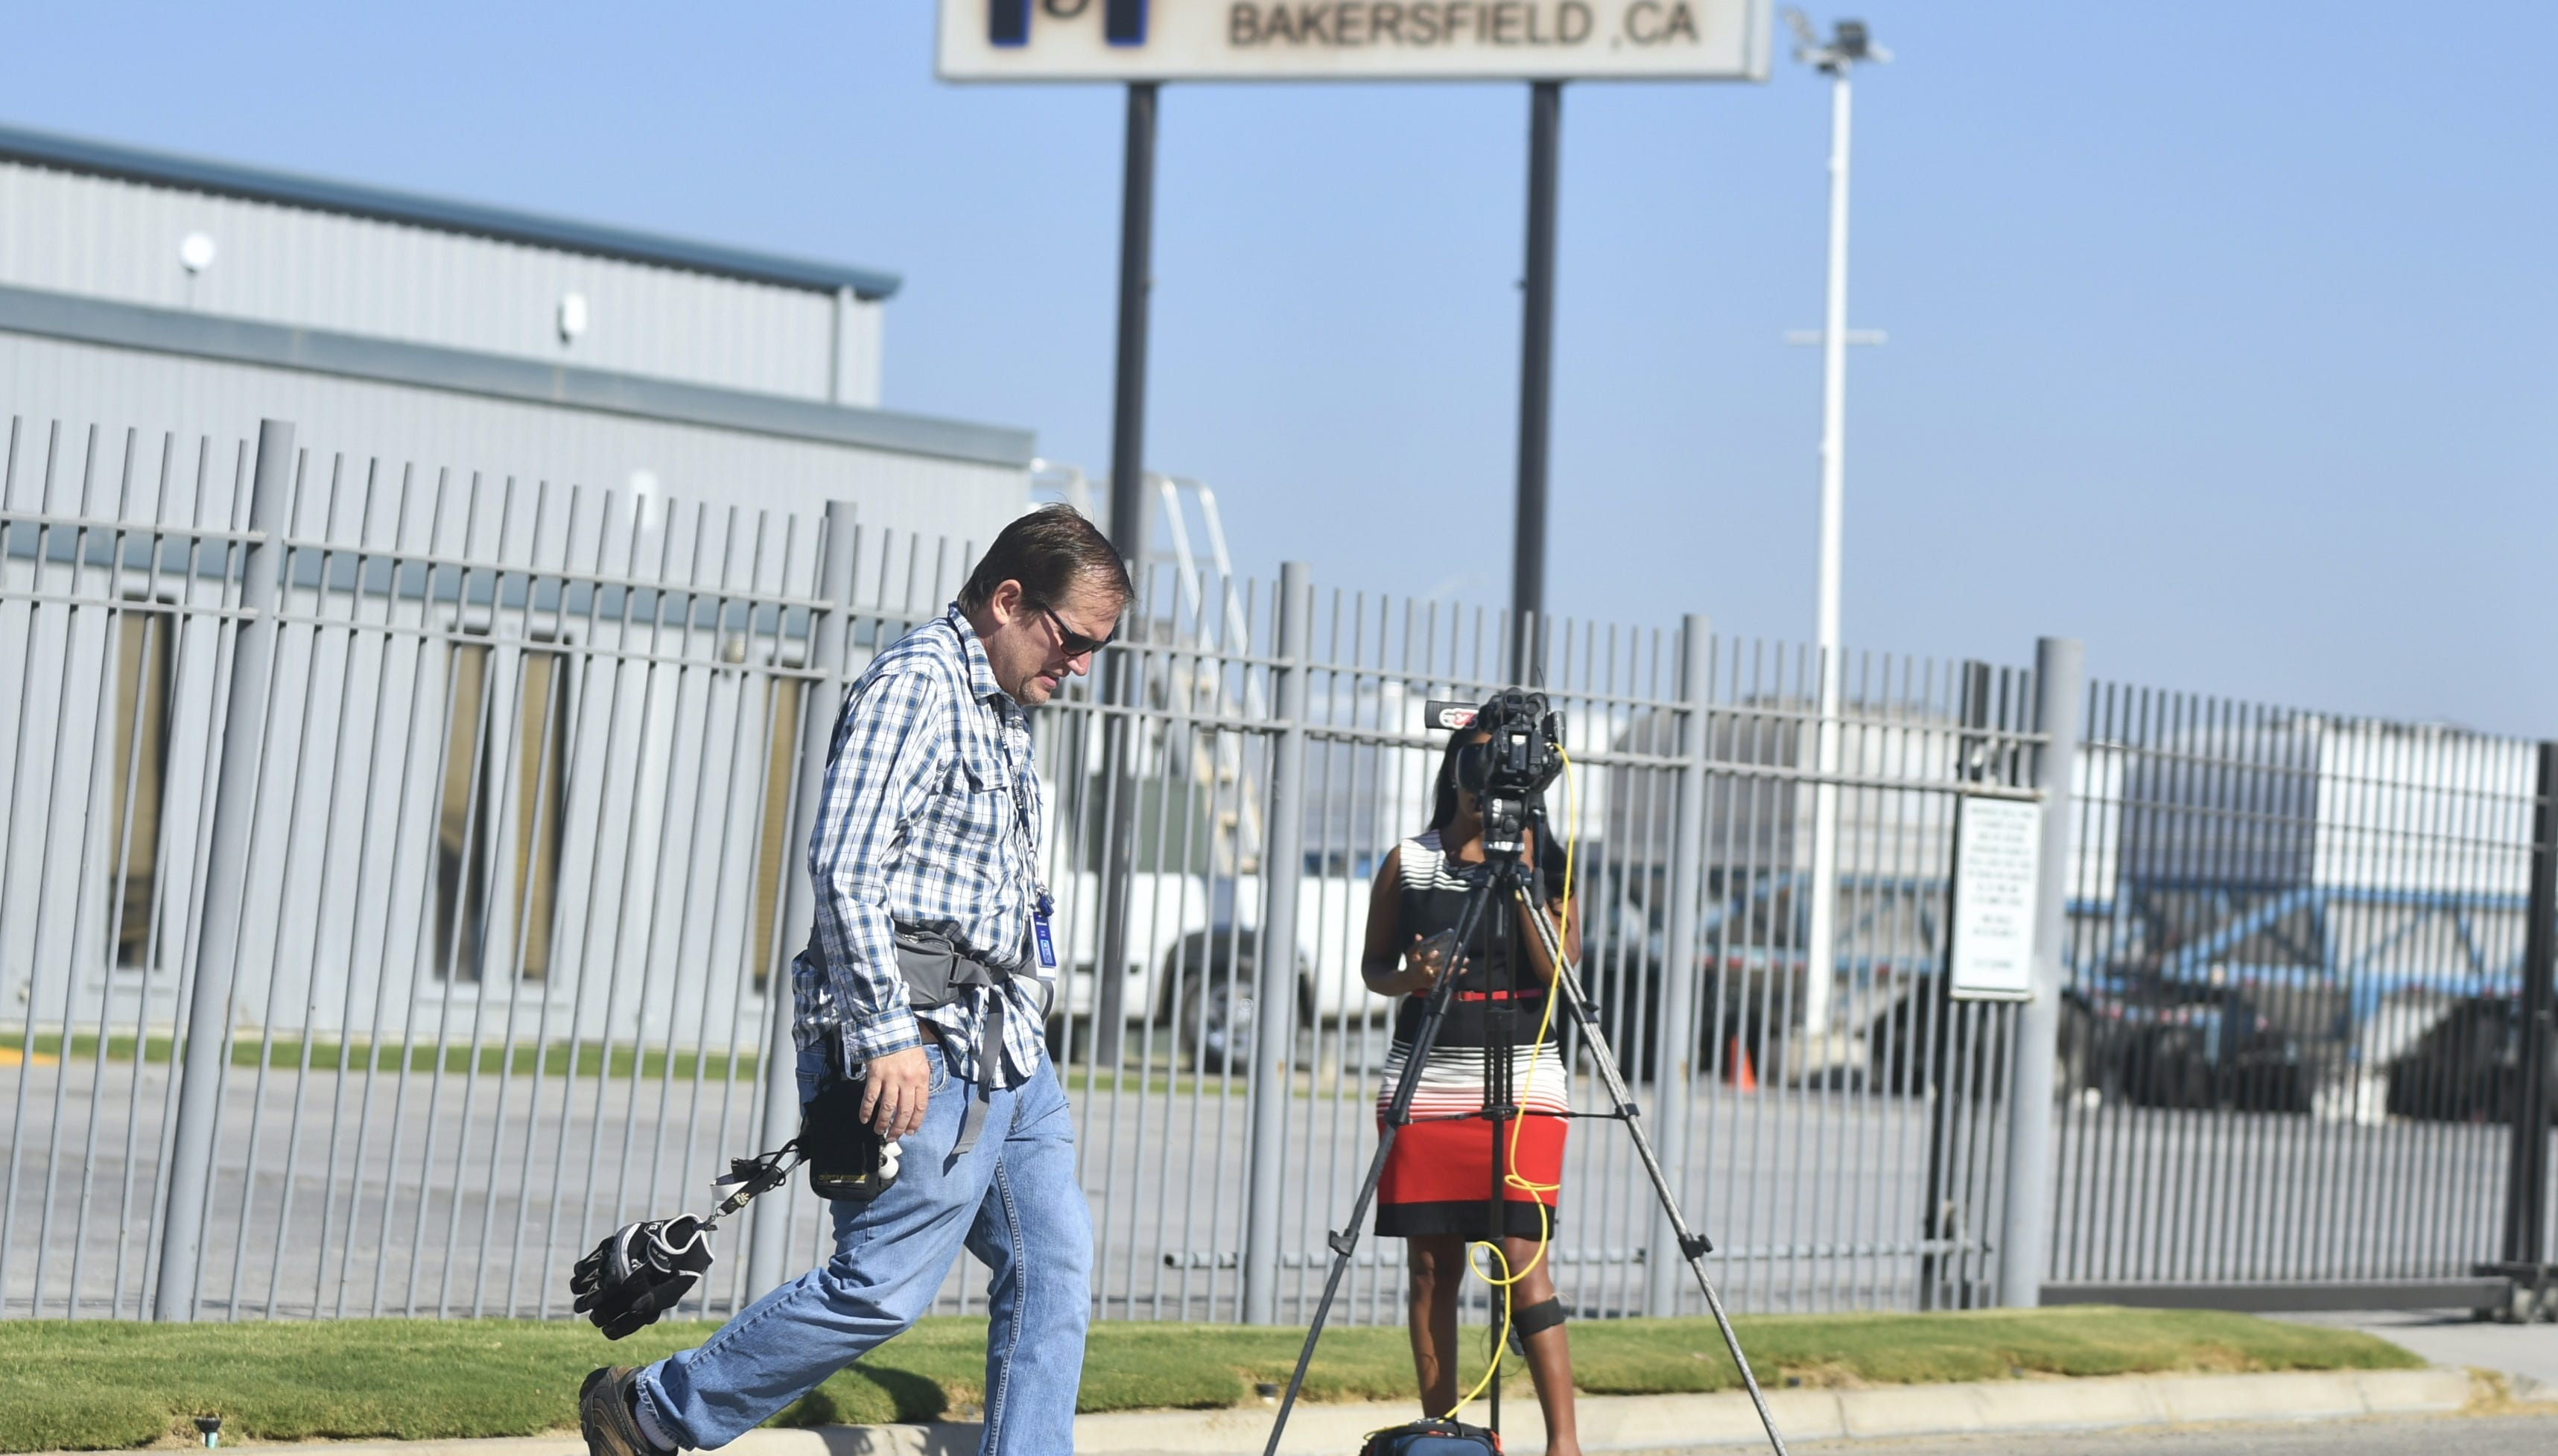 News outlets are working to uncover a Bakersfield shooting that left six dead, including the gunman. A press conference held by Kern County Sheriff's Department is planned for 11 a.m.